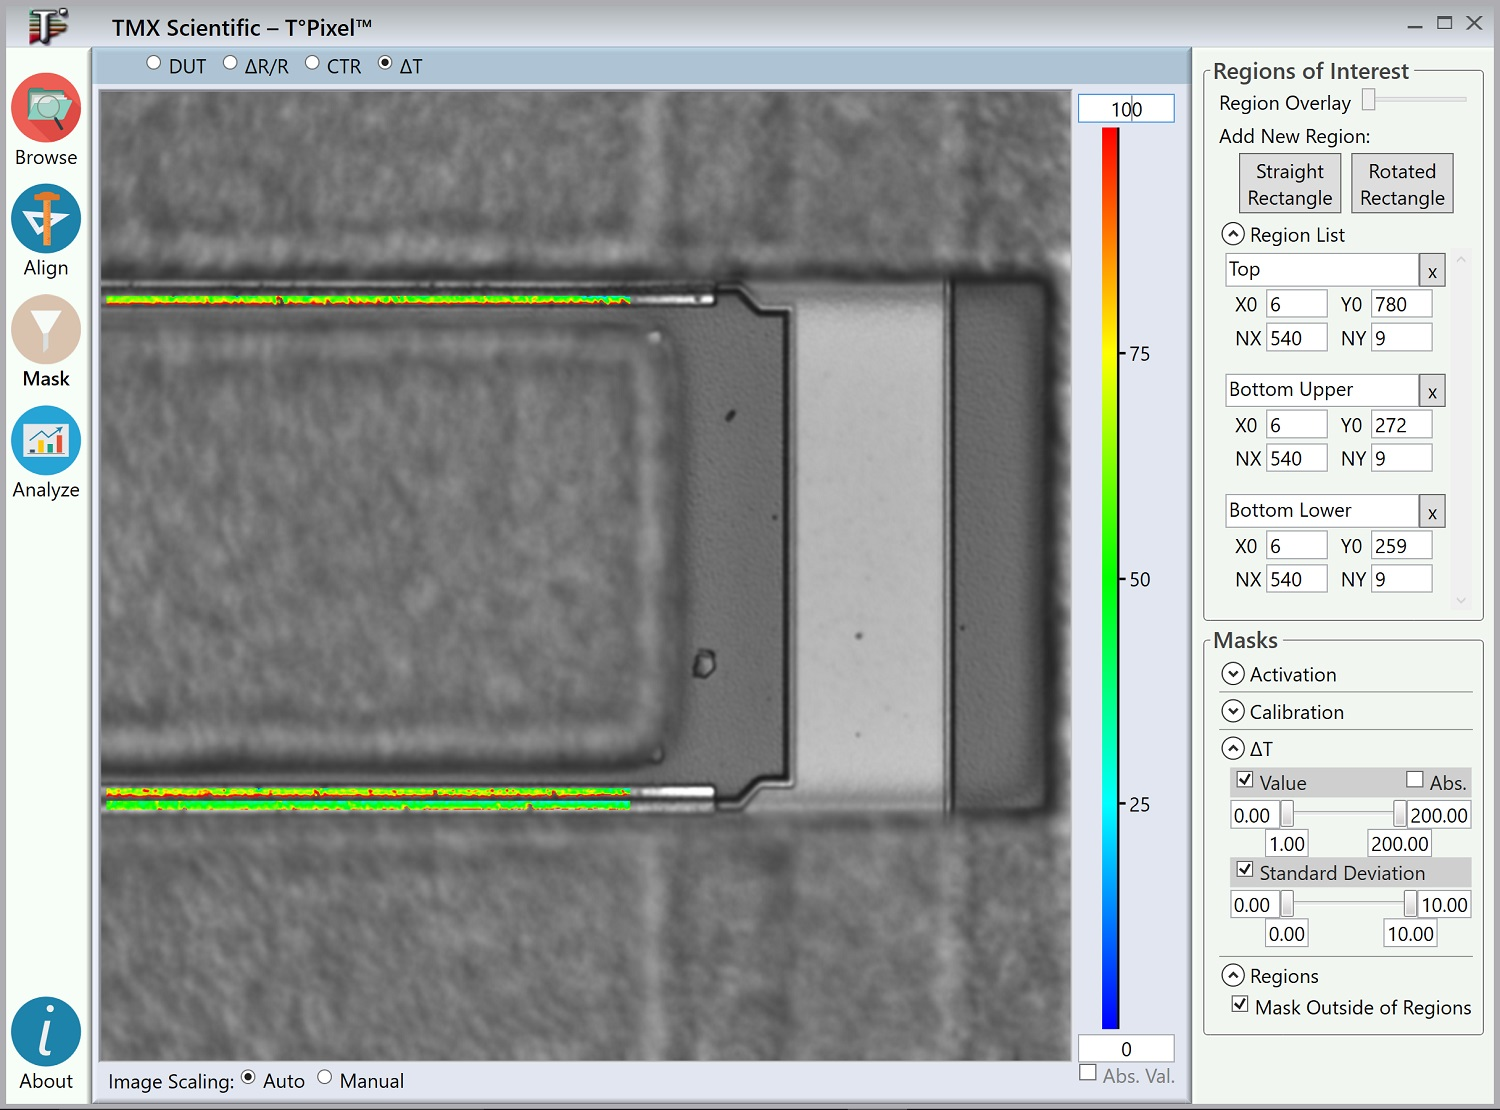 Apply Image Masks to Extract Results from Specific Areas of Interest